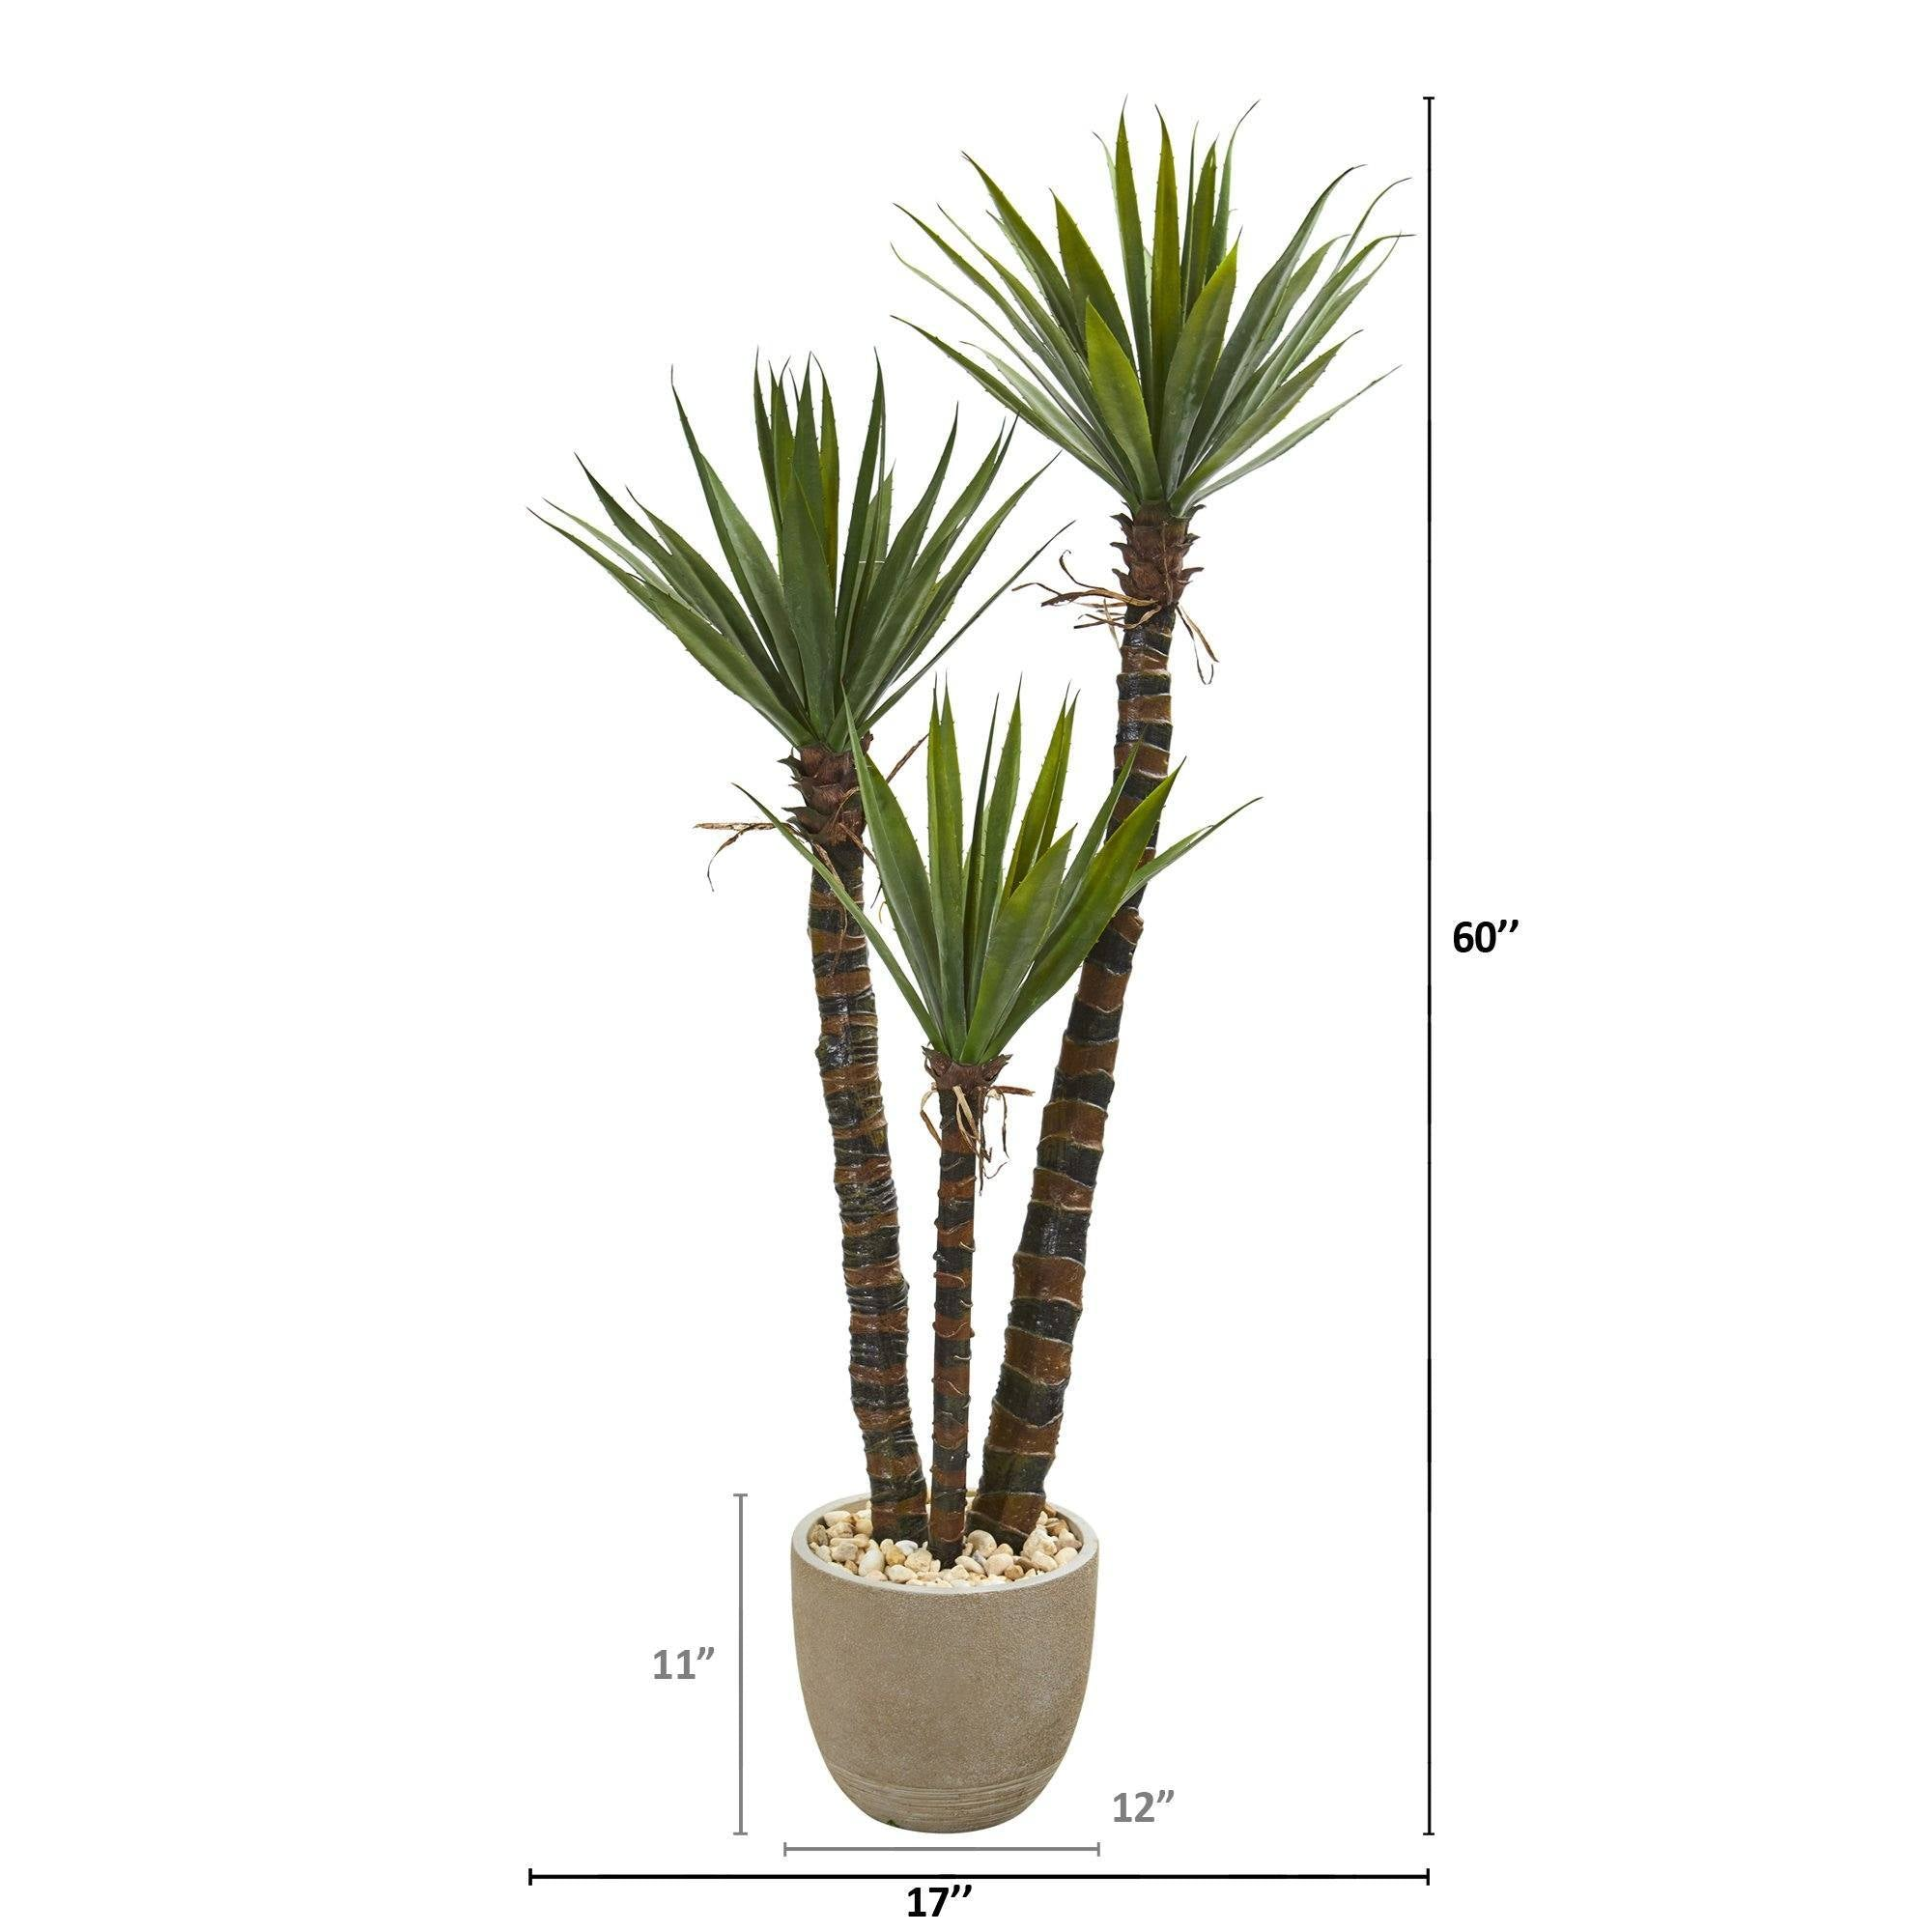 60 Yucca Artificial Tree In Sandstone Planter Nearly Natural